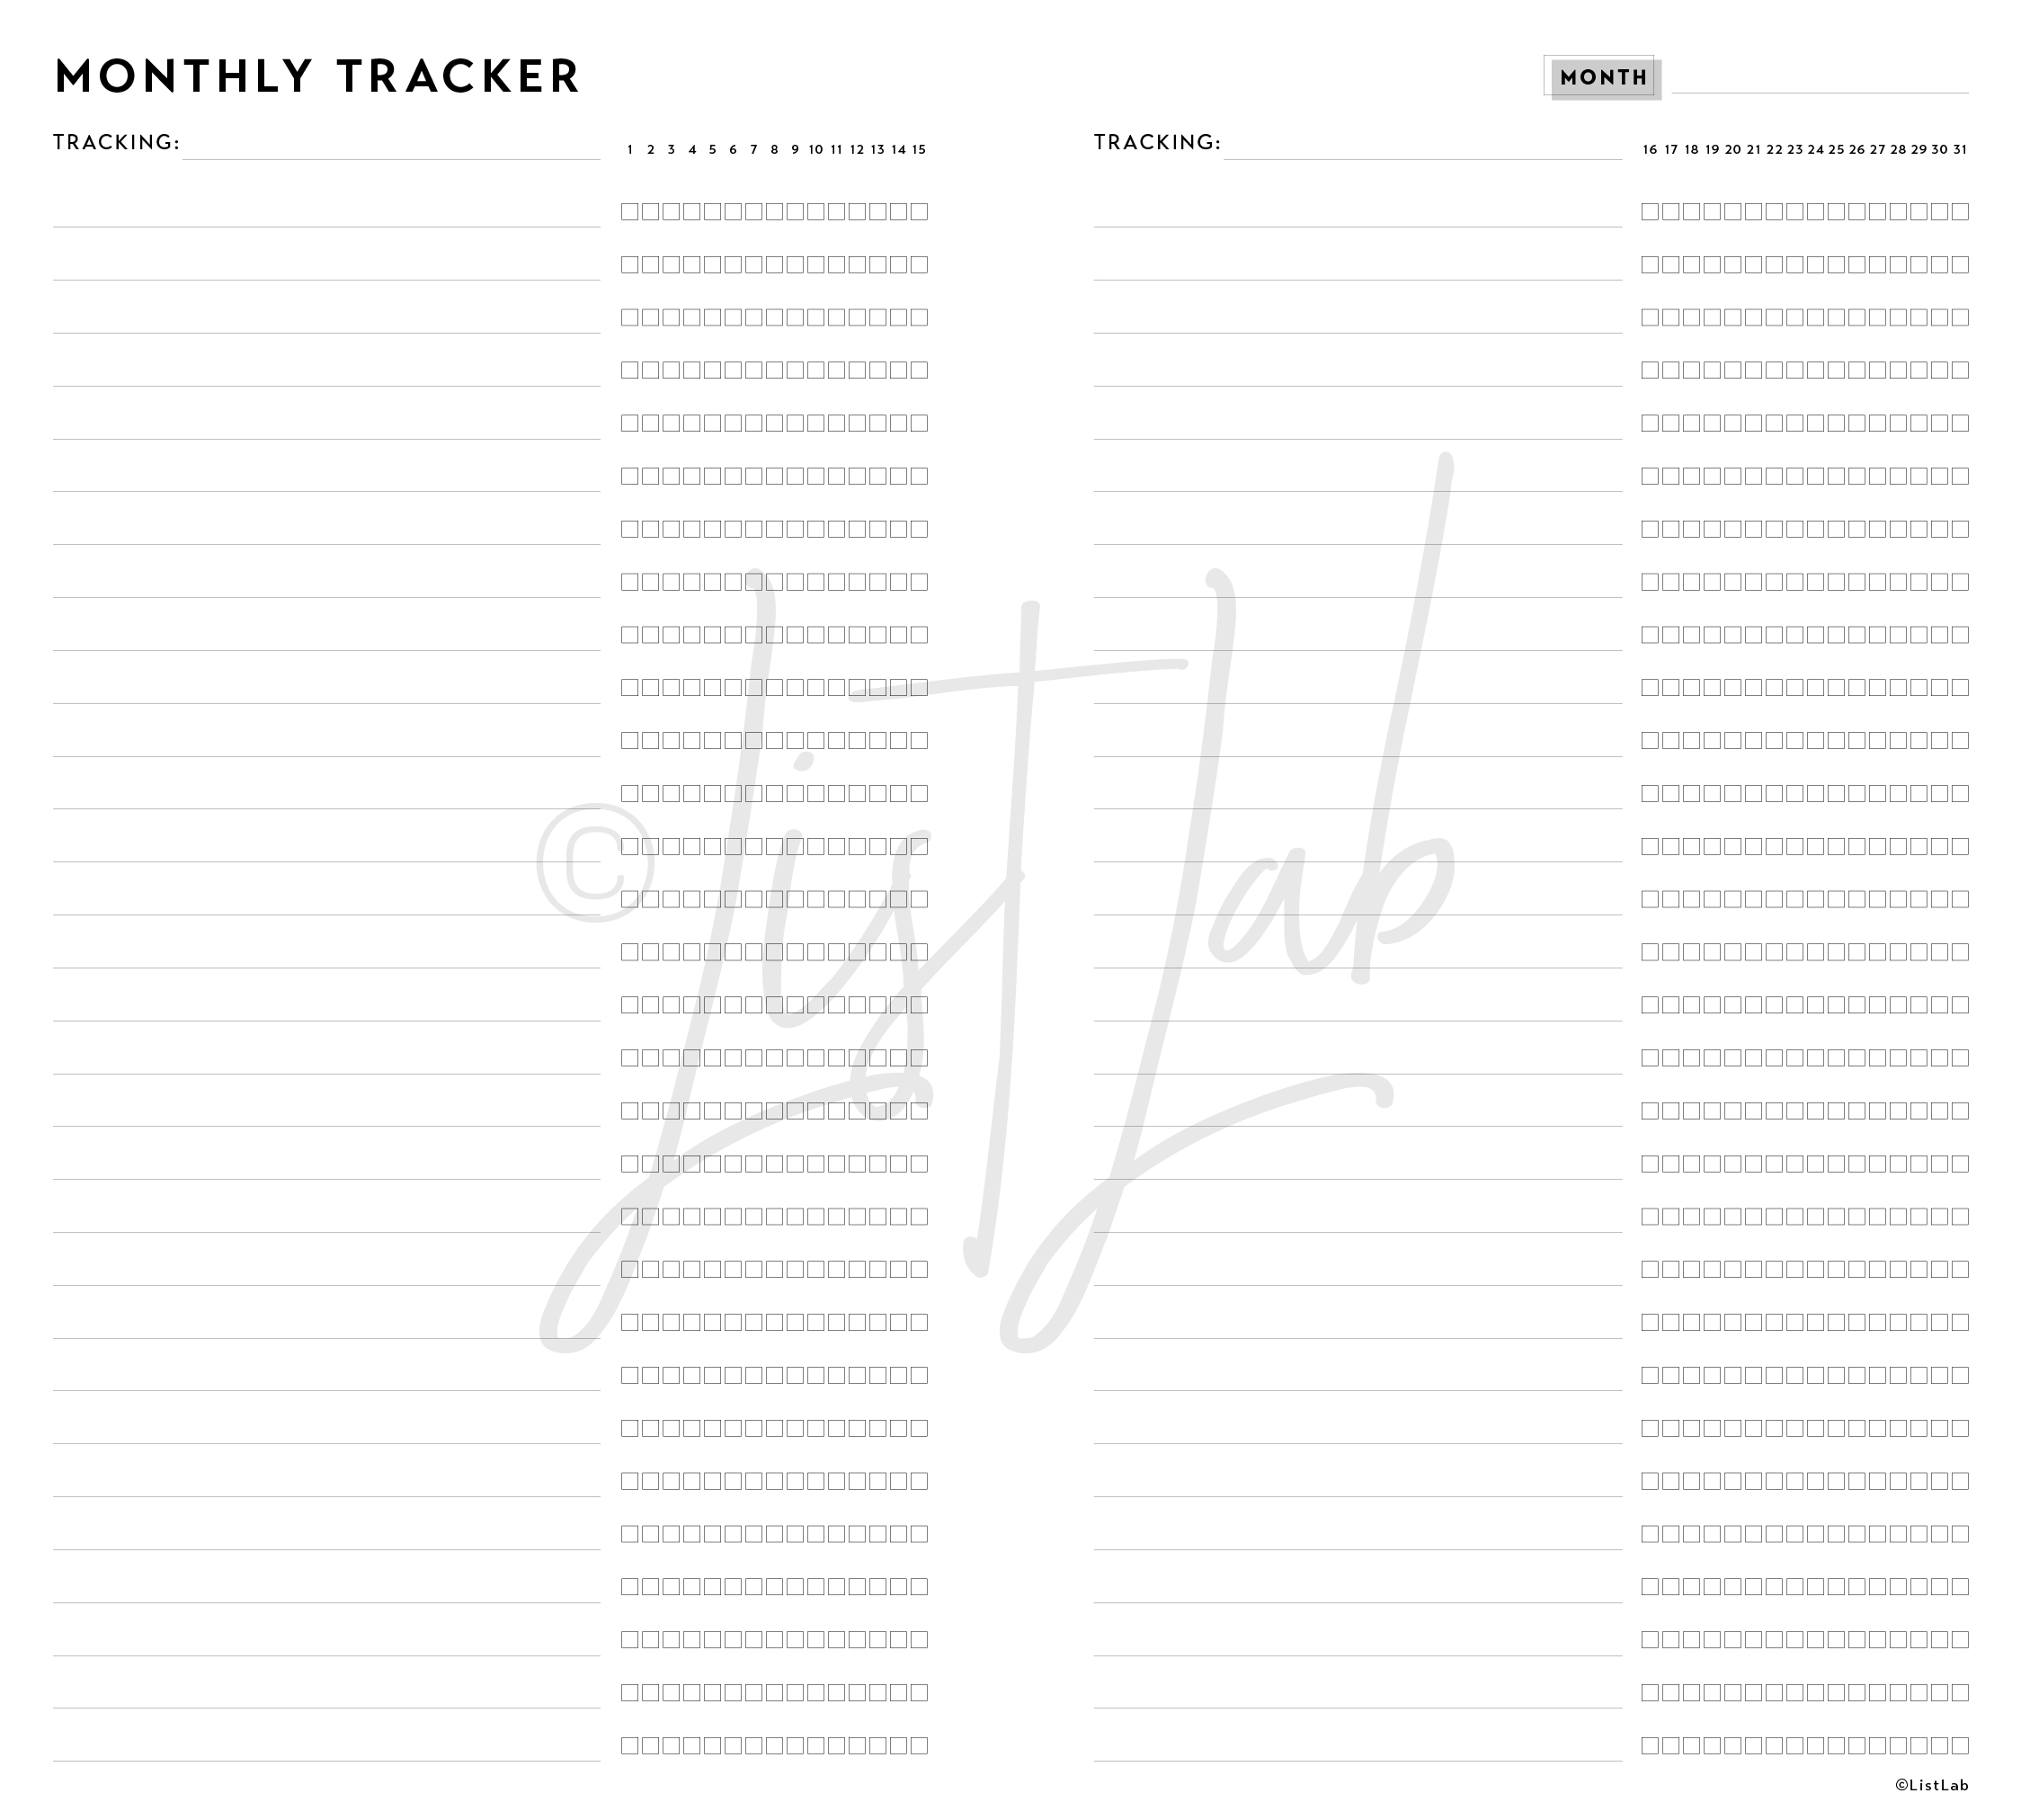 2-PAGE MONTHLY TRACKER